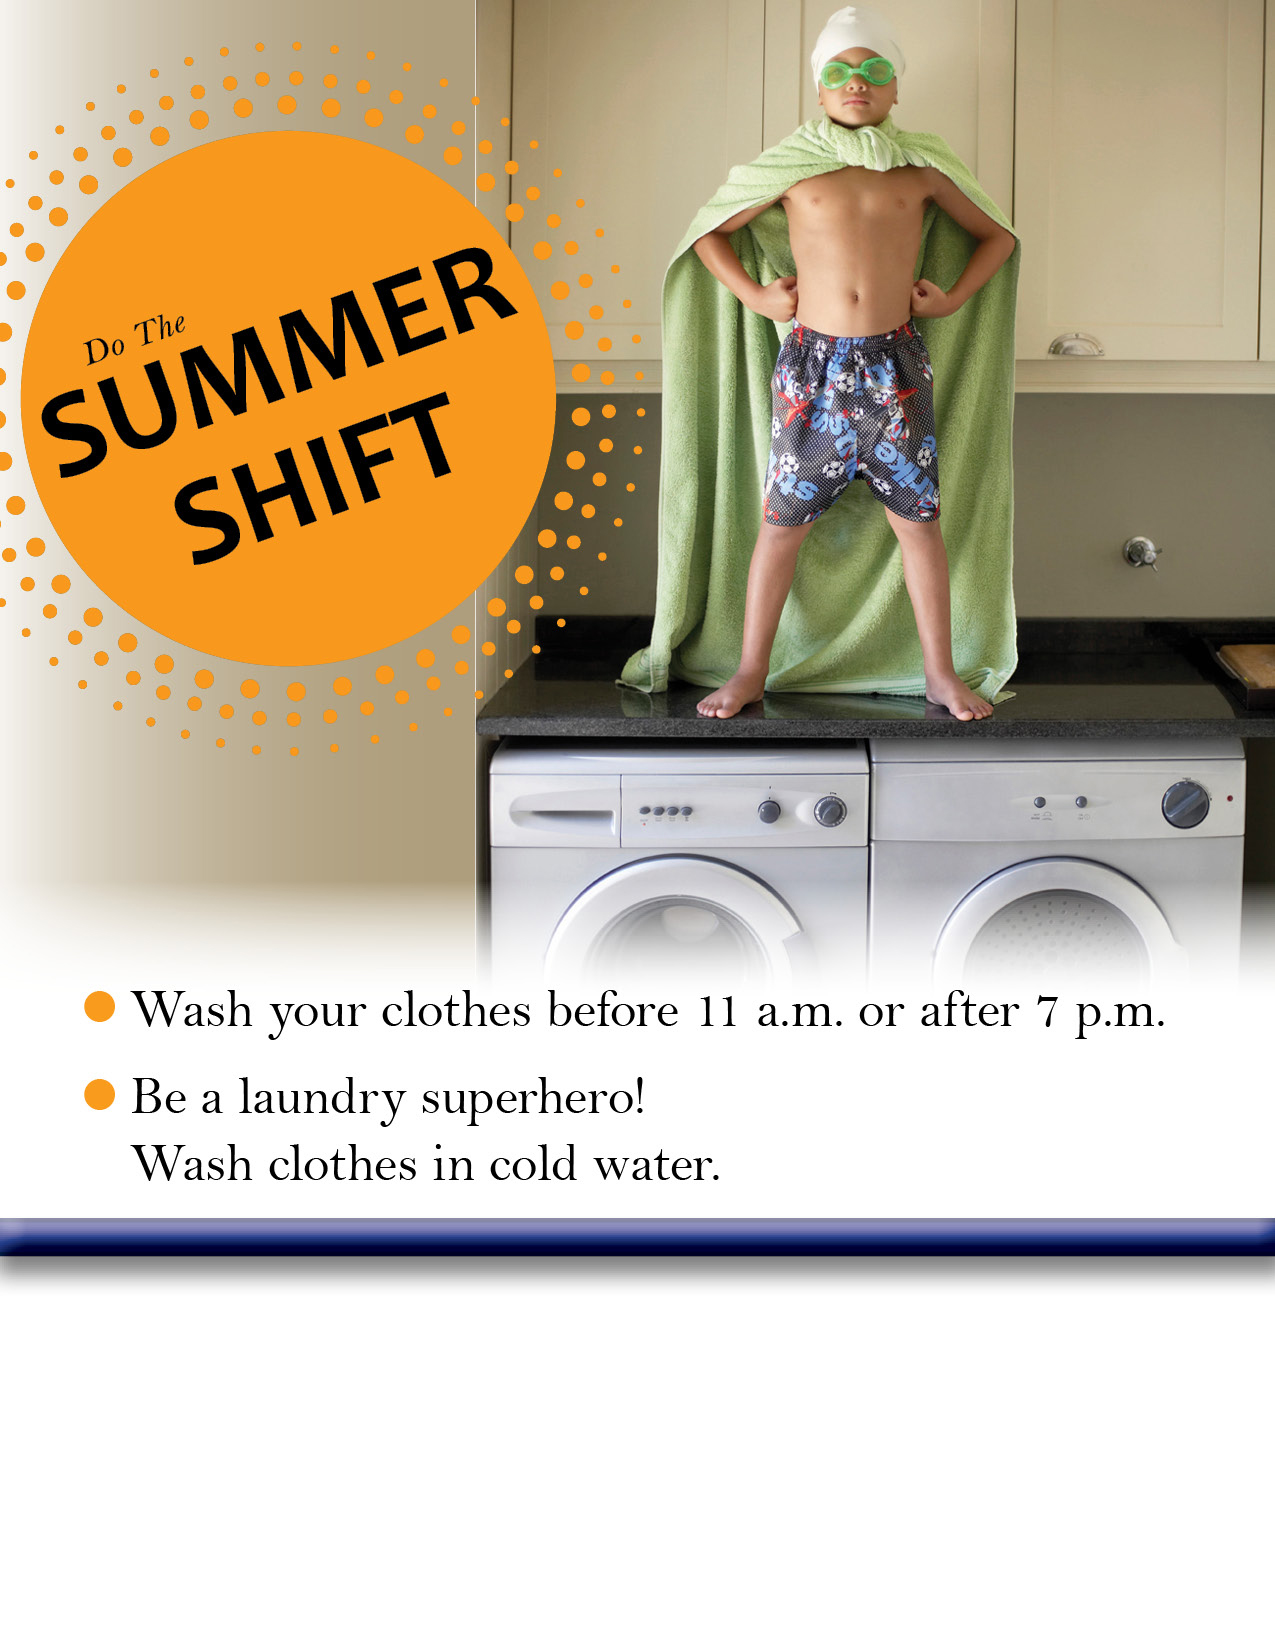 Do the Summer Shift, Wash Laundry Before or After Peak Times